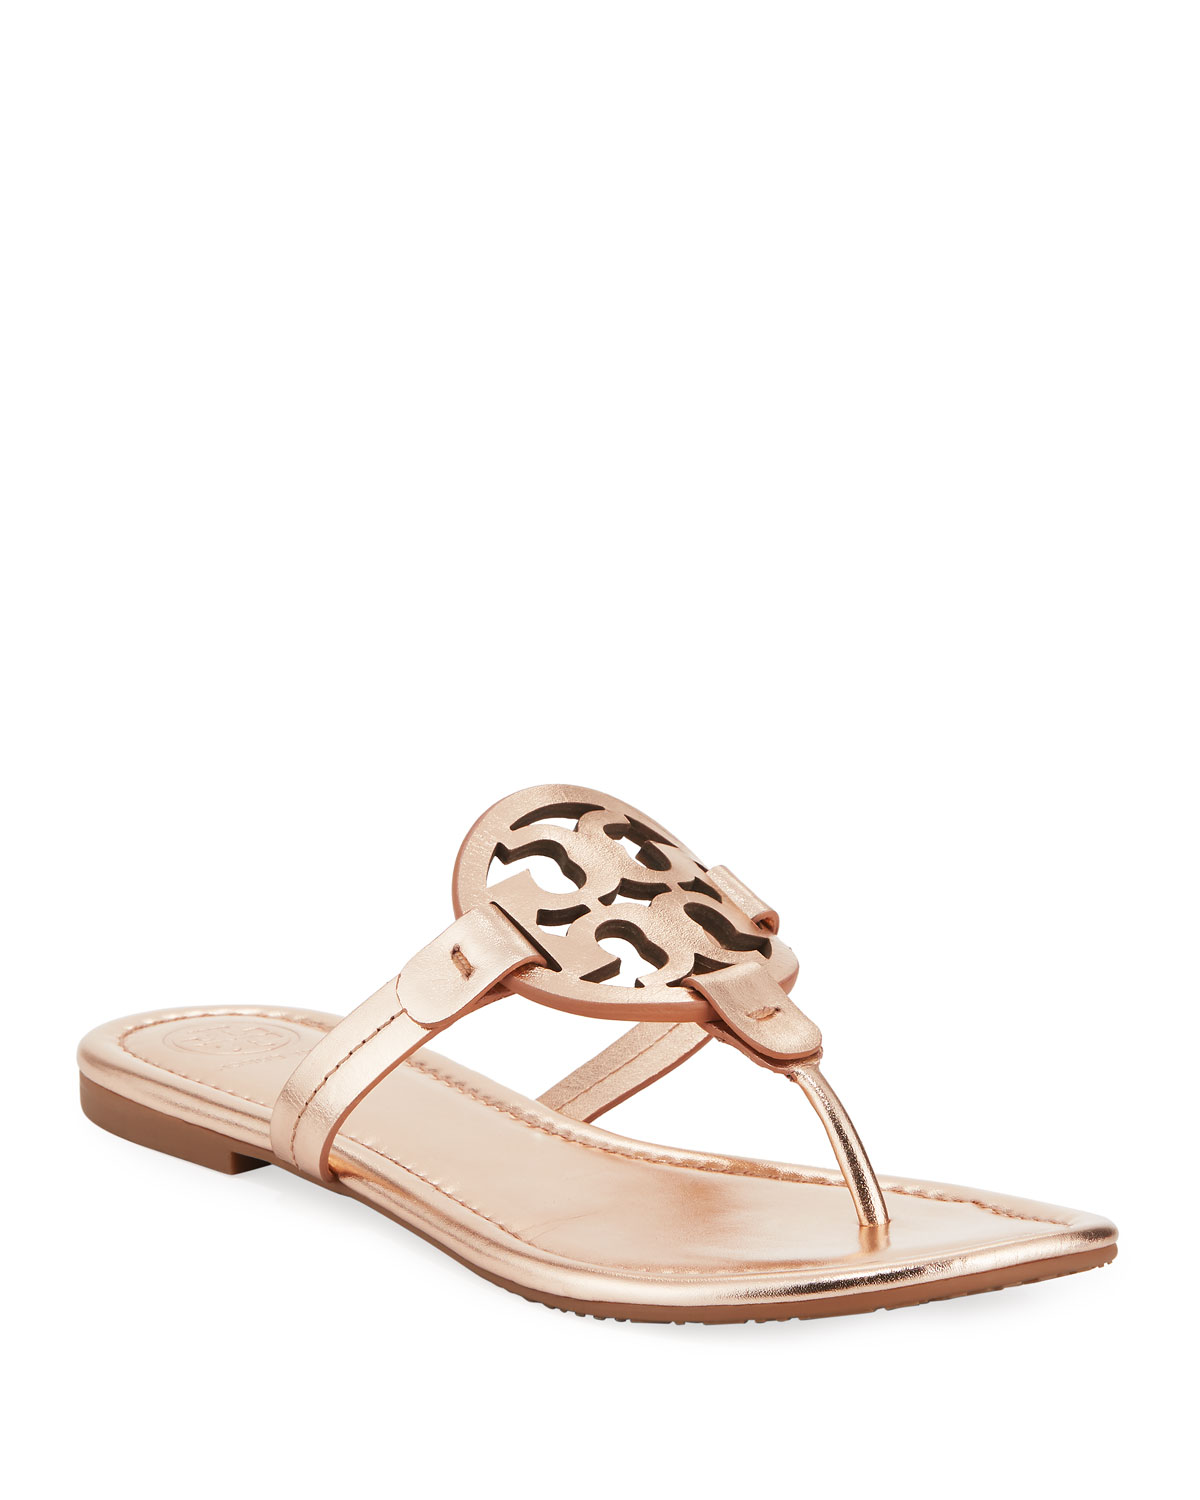 b6205db56 Tory Burch Miller Medallion Metallic Leather Flat Slide Sandal ...